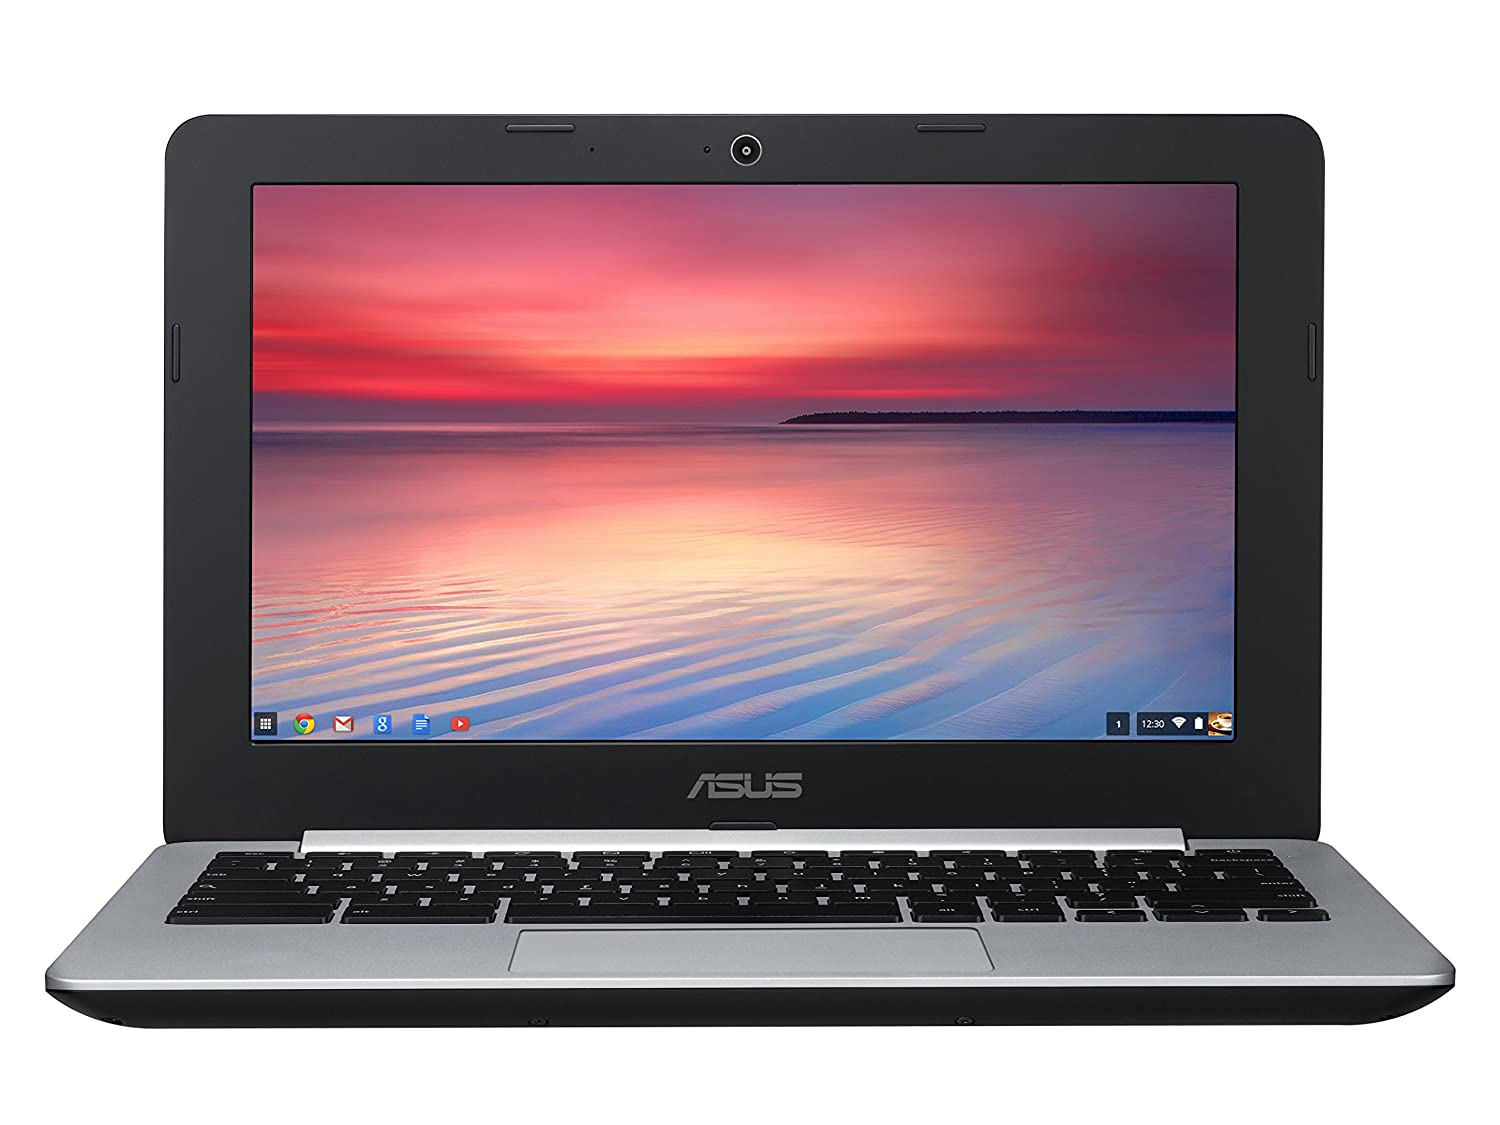 ASUS C200MA is an affordable laptop.